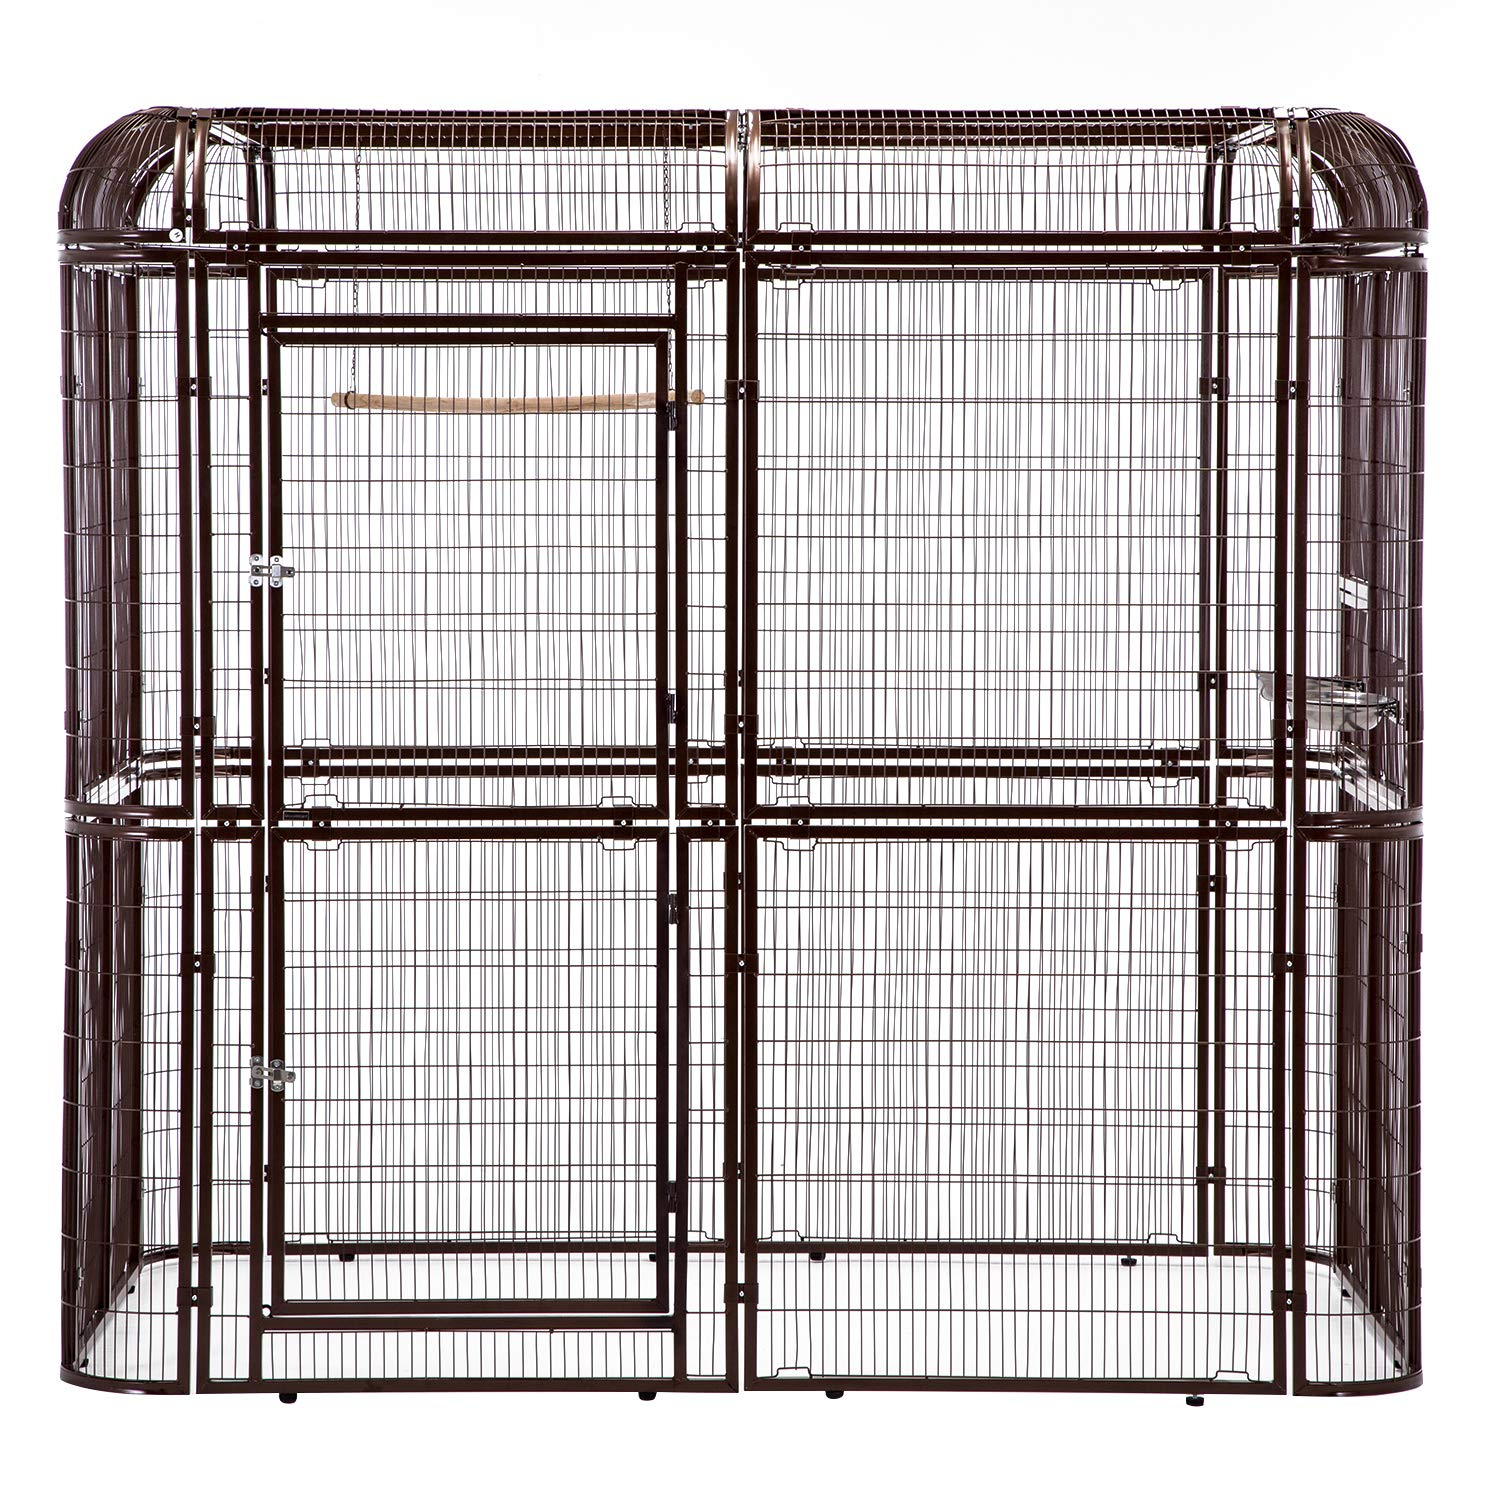 Sliverylake Big Walk-in Bird Aviary Cage Parrot Macaw Reptile Luxury Design (Brown)